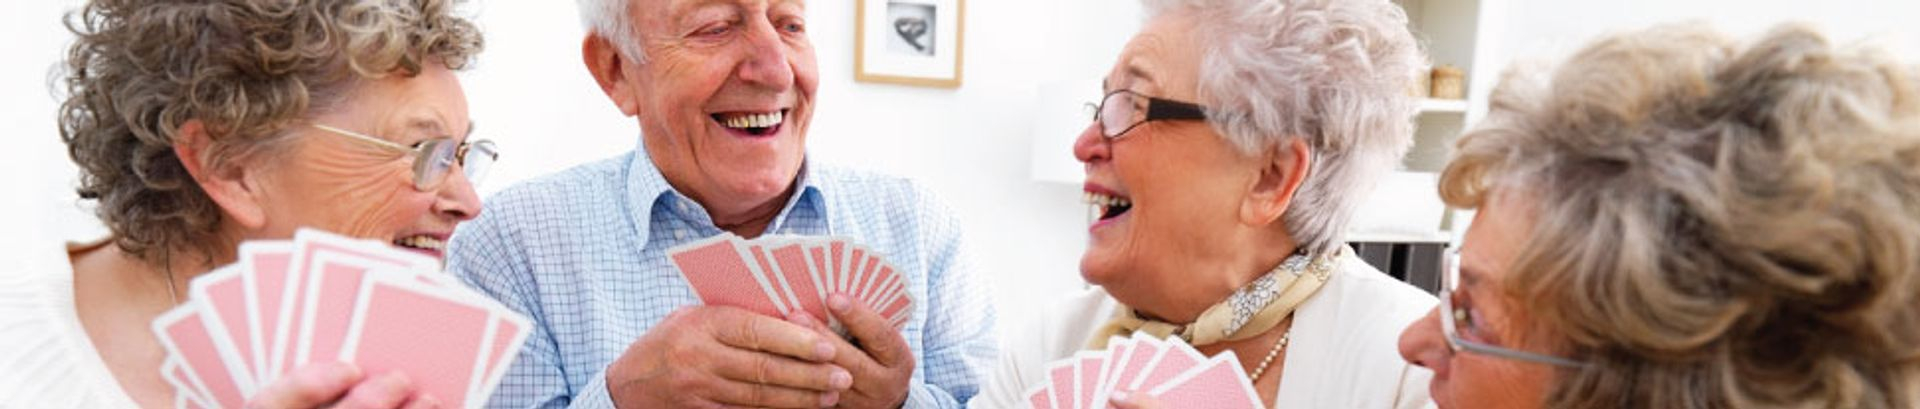 Most Trusted Senior Dating Online Service No Payments